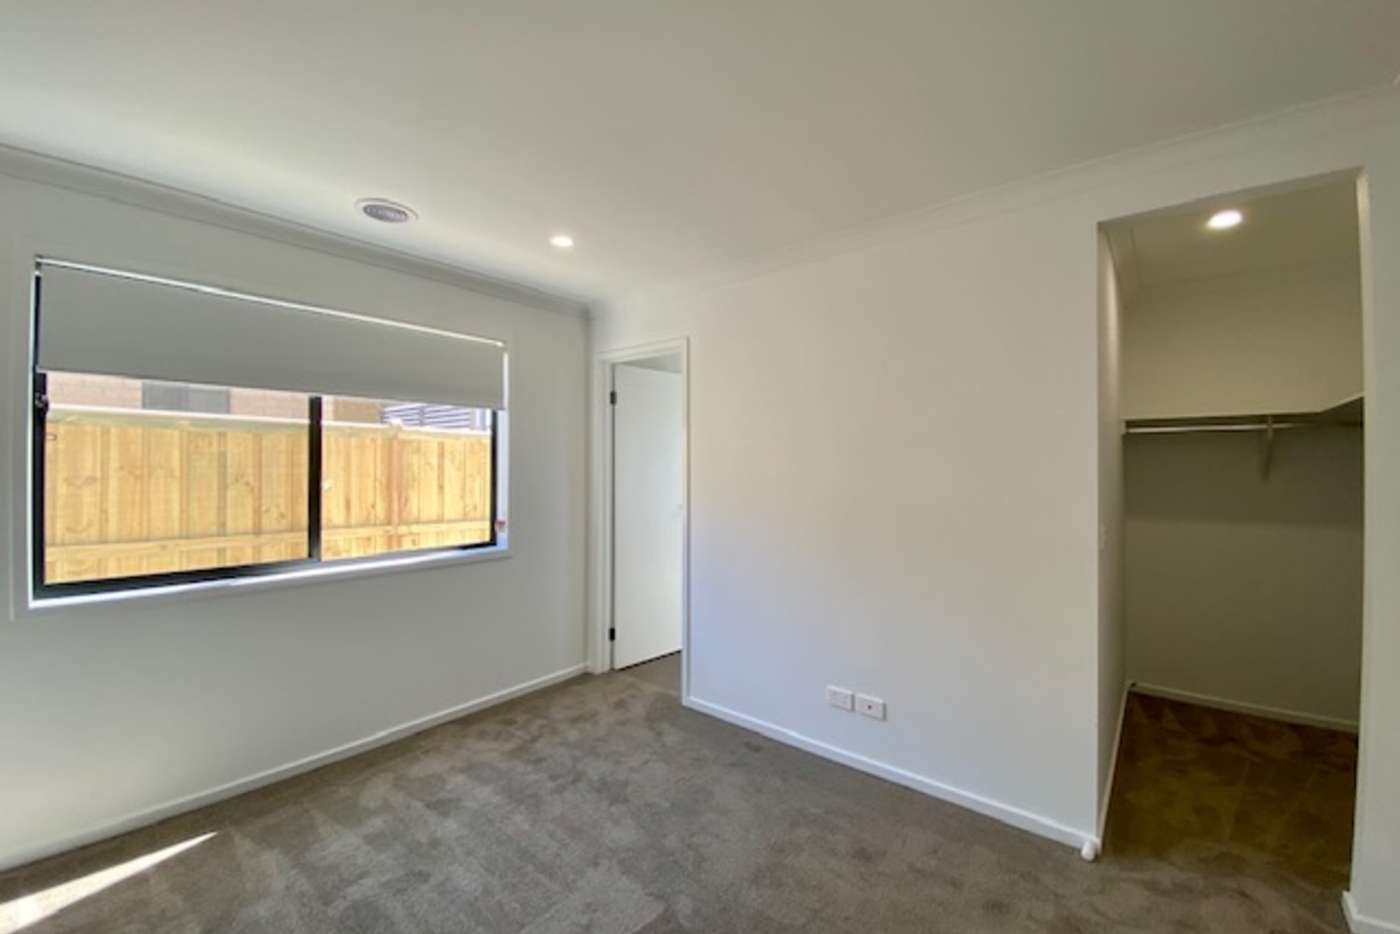 Seventh view of Homely house listing, 60 Annabella Street, Cranbourne East VIC 3977